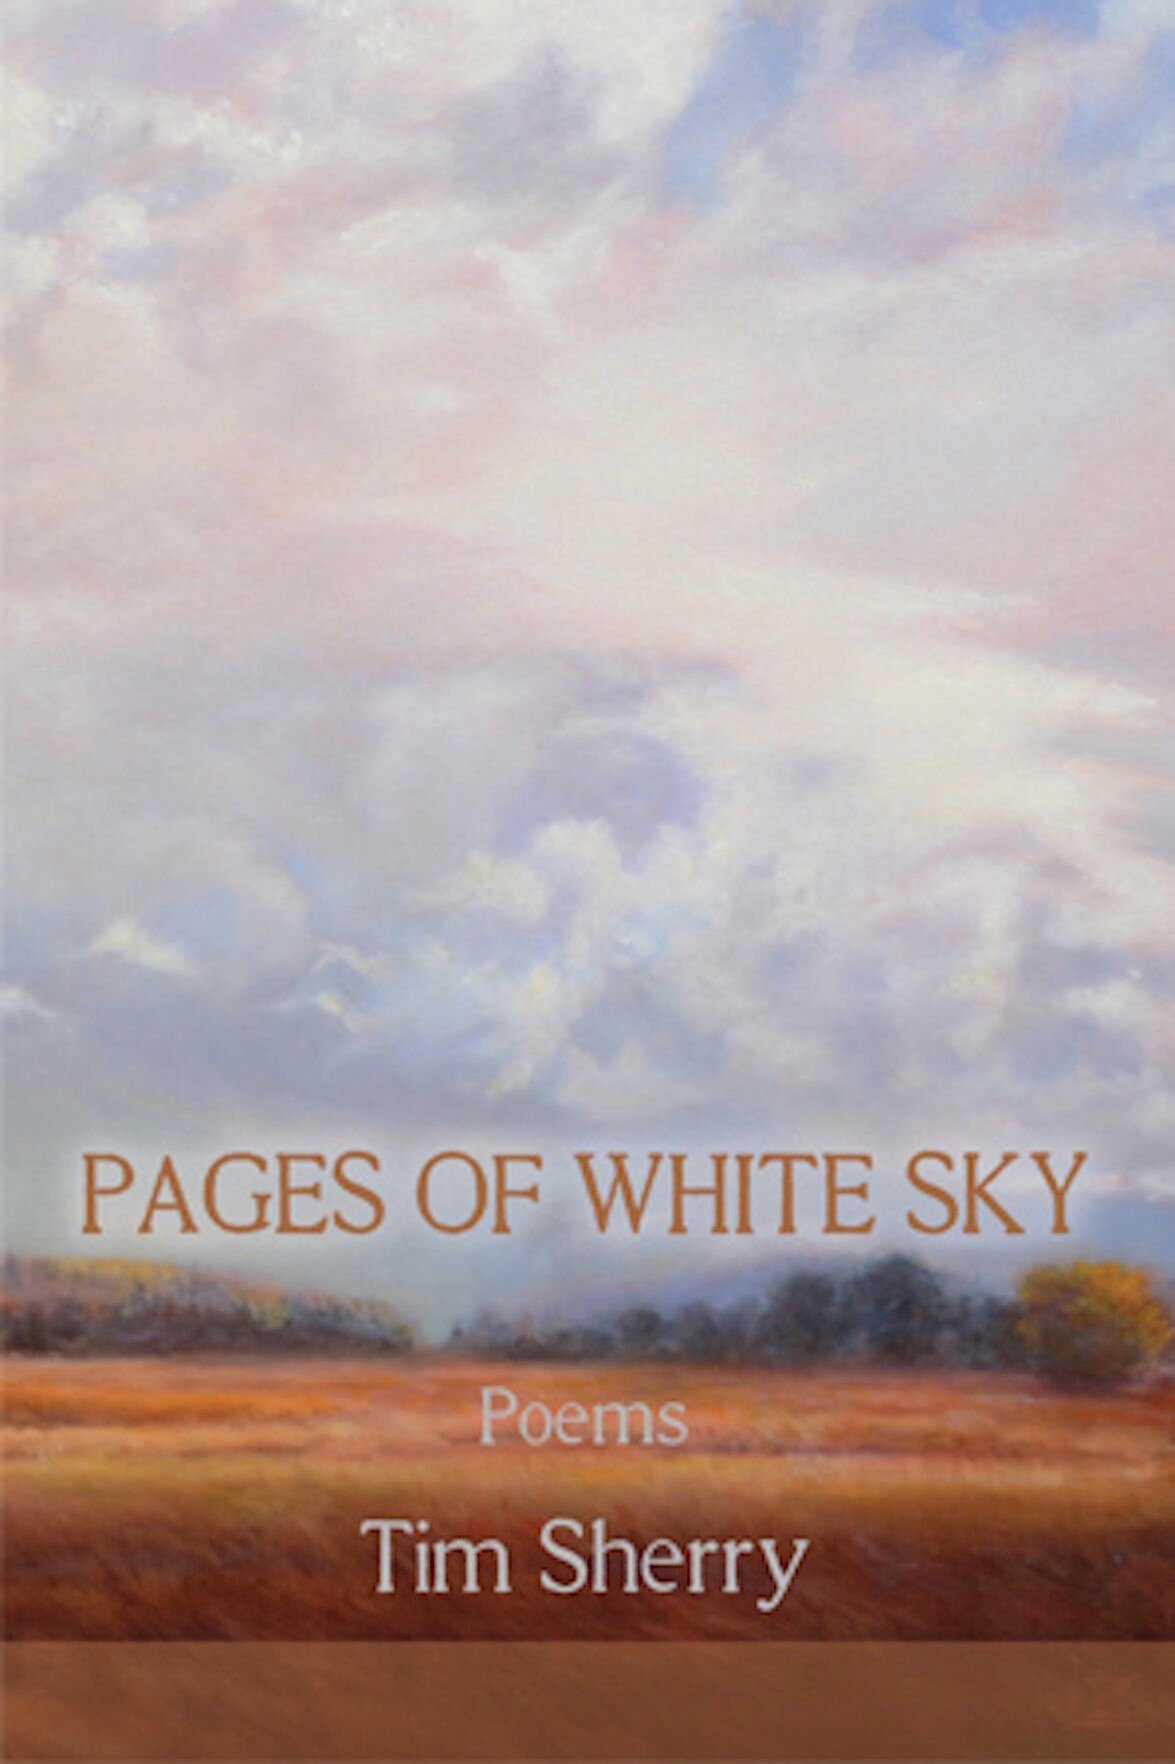 'Pages of White Sky'